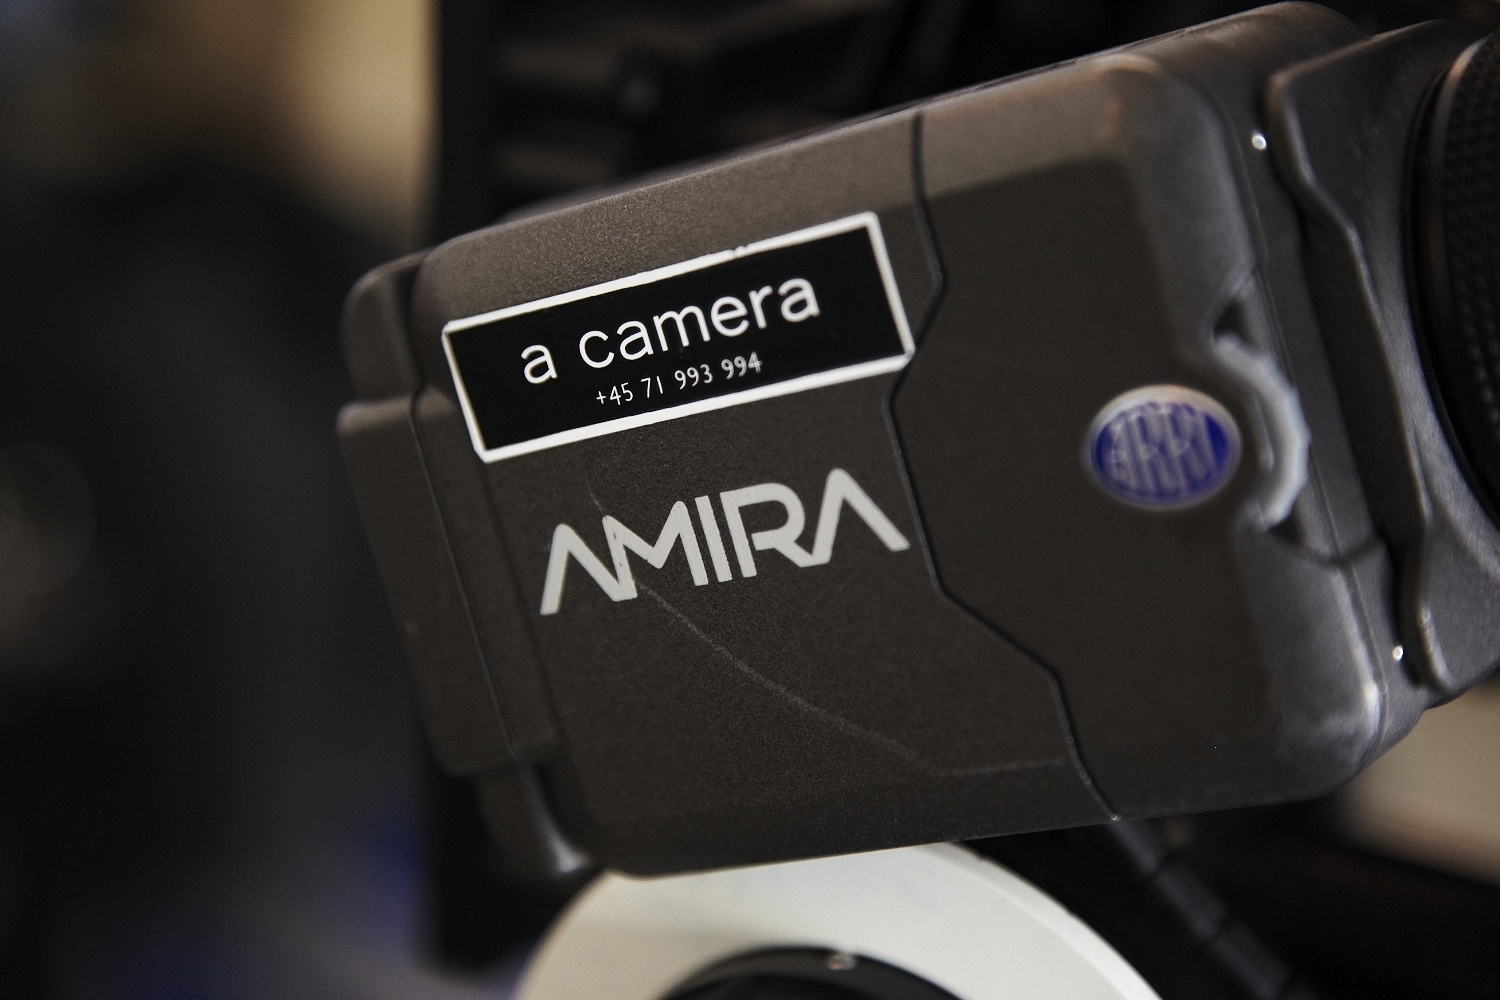 Arri Amira    Resolution:  UHD 3.8K - 3.2K - 2K - HD   Codecs:  Prores4444XQ - Prores4444 - Proress422   Framerate:  Up to 200 Fps depending on resolution and codec selection.